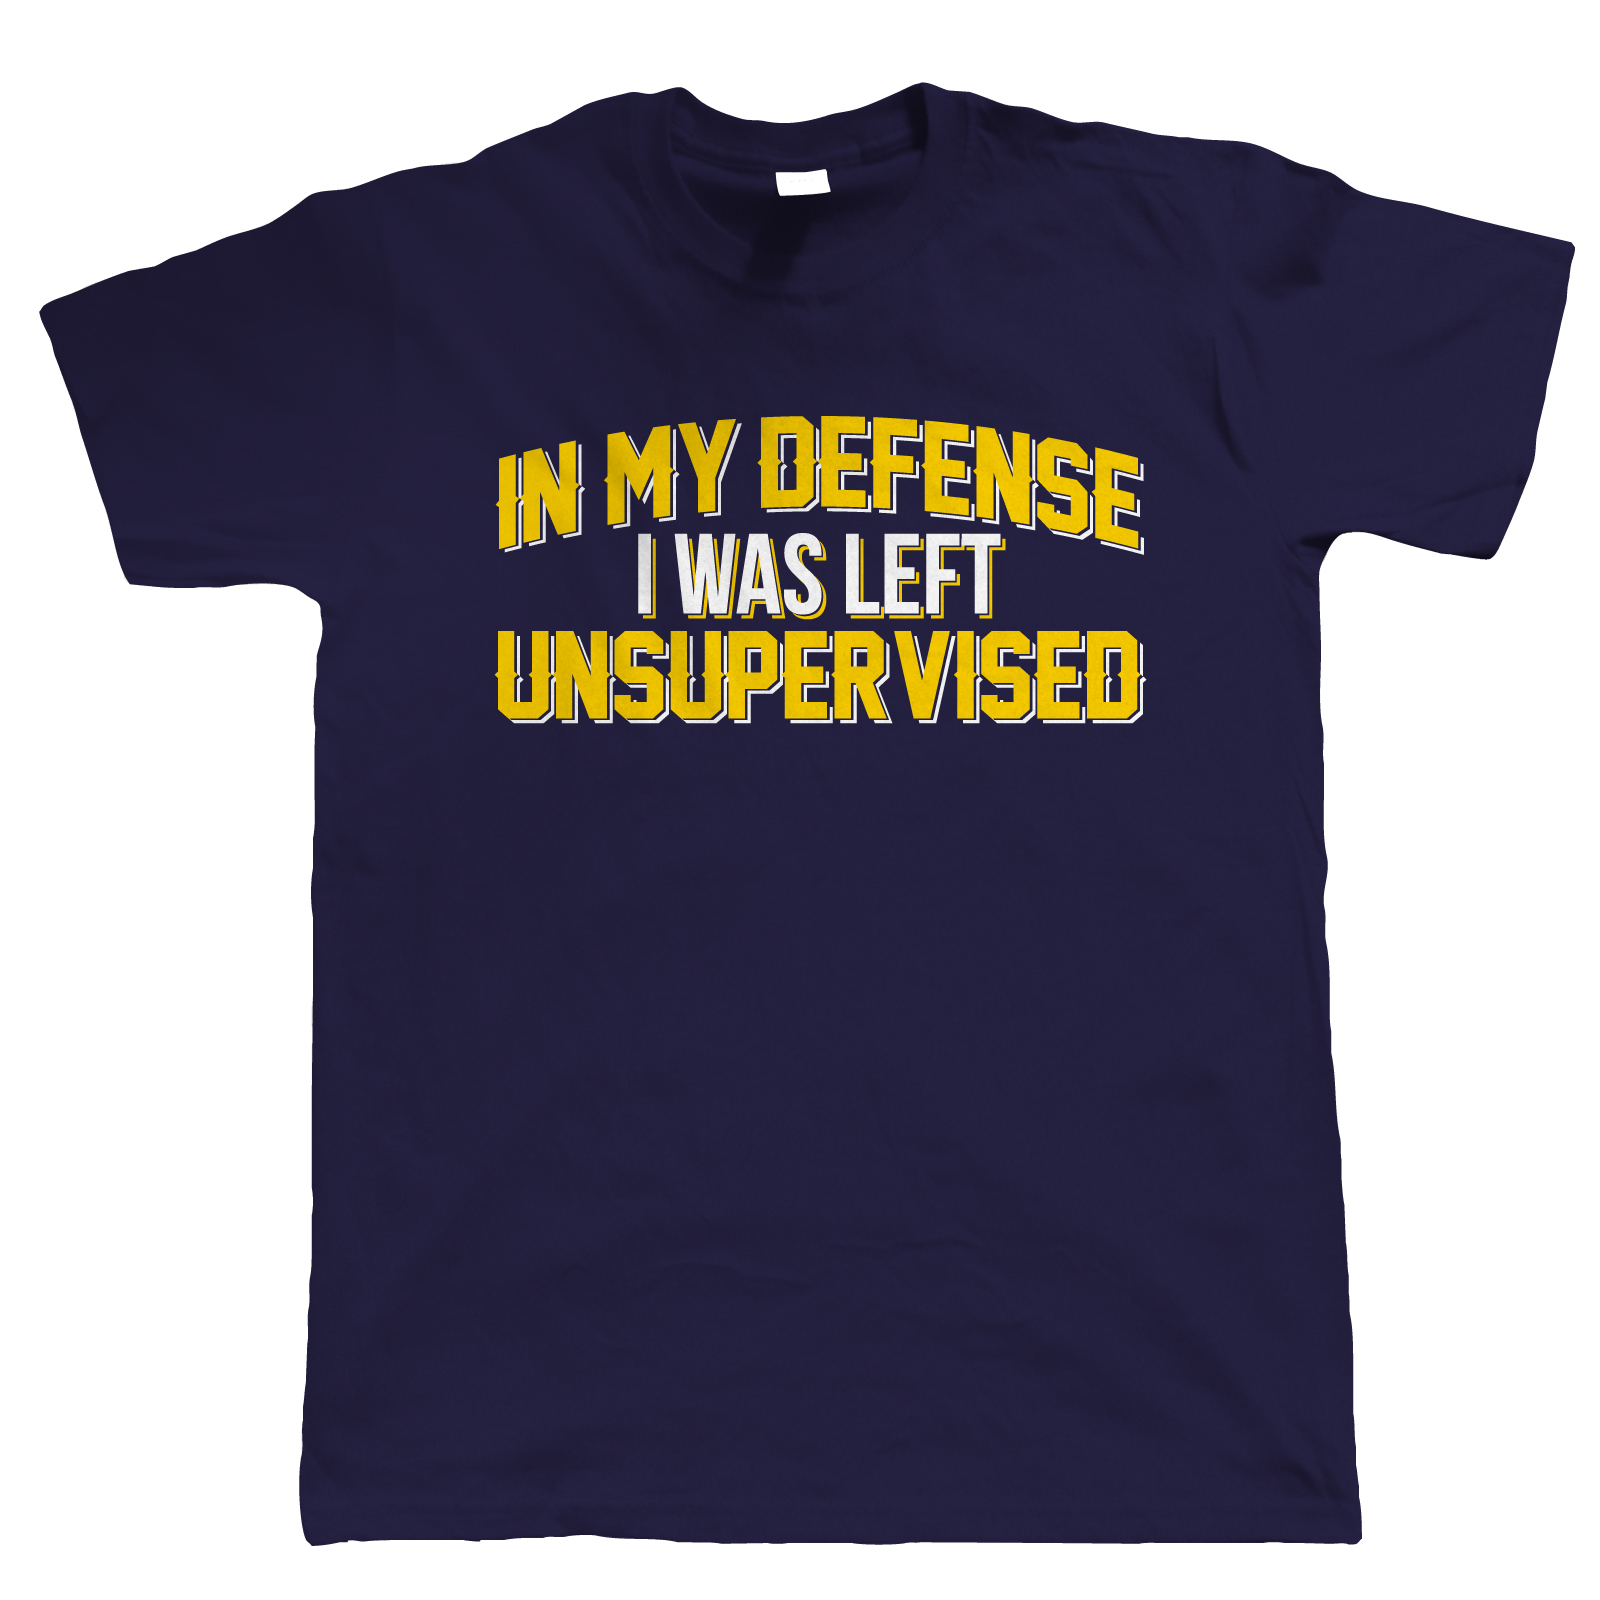 In-My-Defense-Mens-Funny-T-Shirt-Unsupervised-Mistake-Clumsy-Gift-Him-Dad-Day thumbnail 10